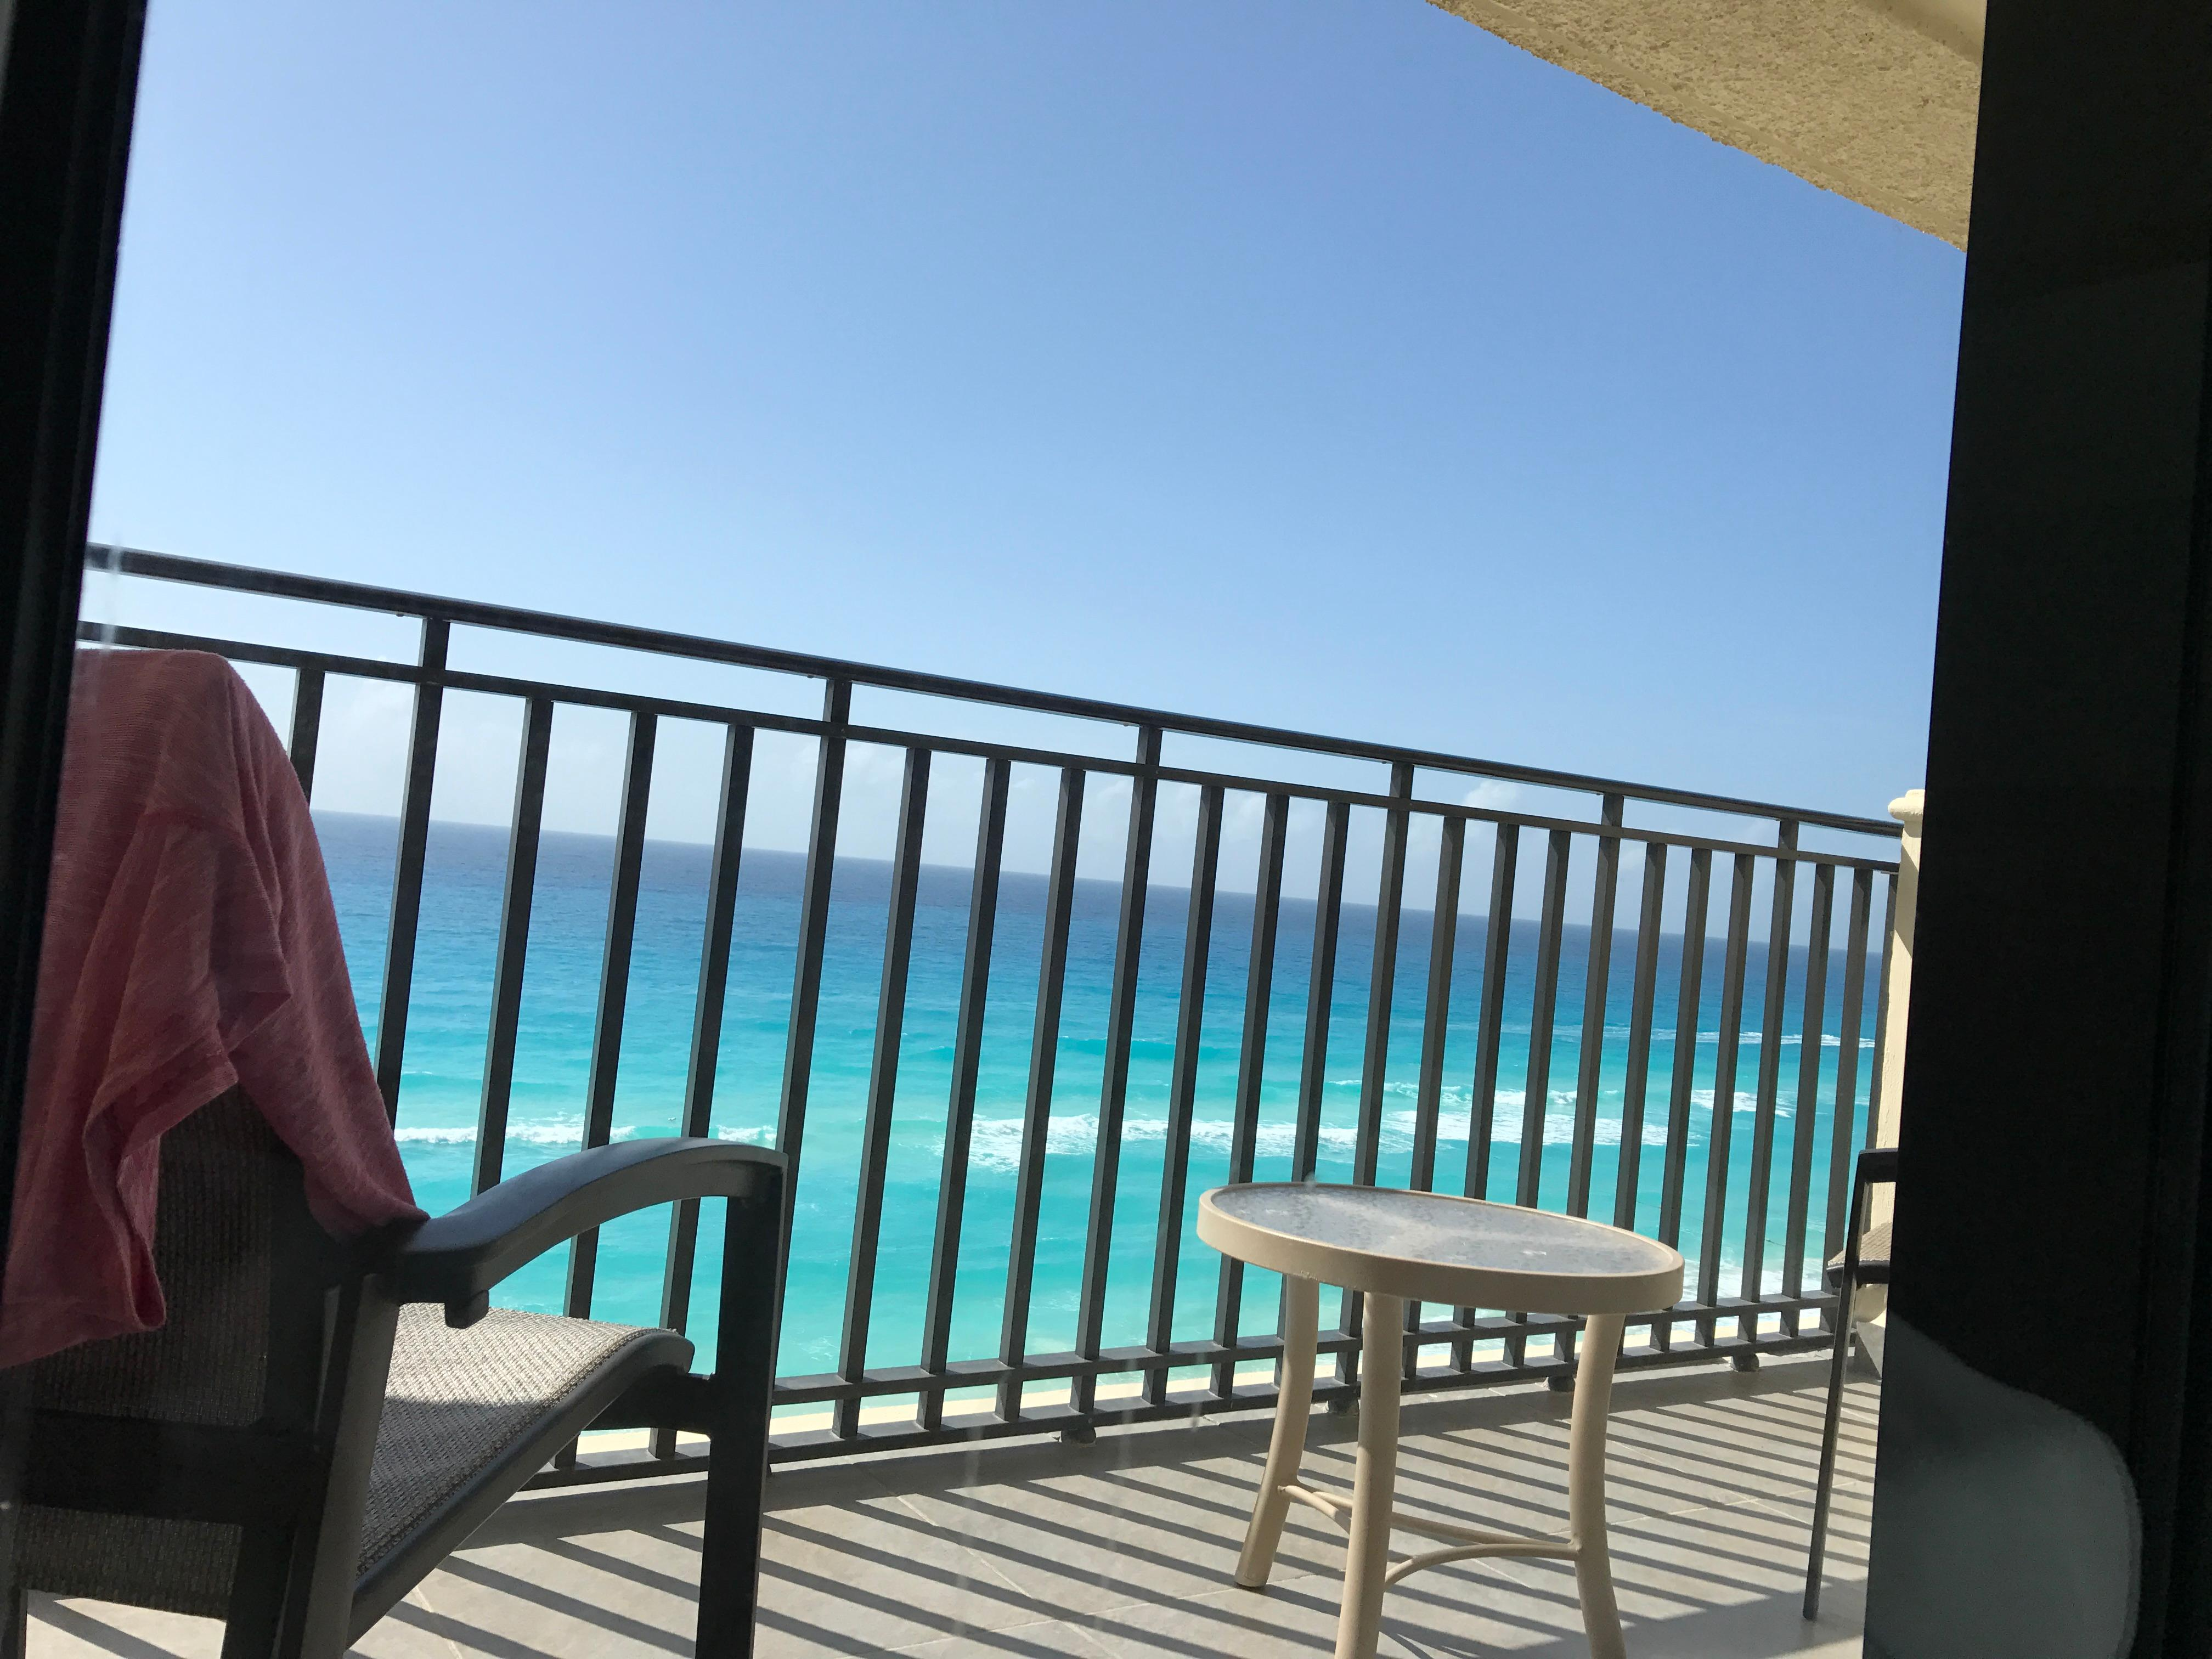 Our balcony (front ocean view)